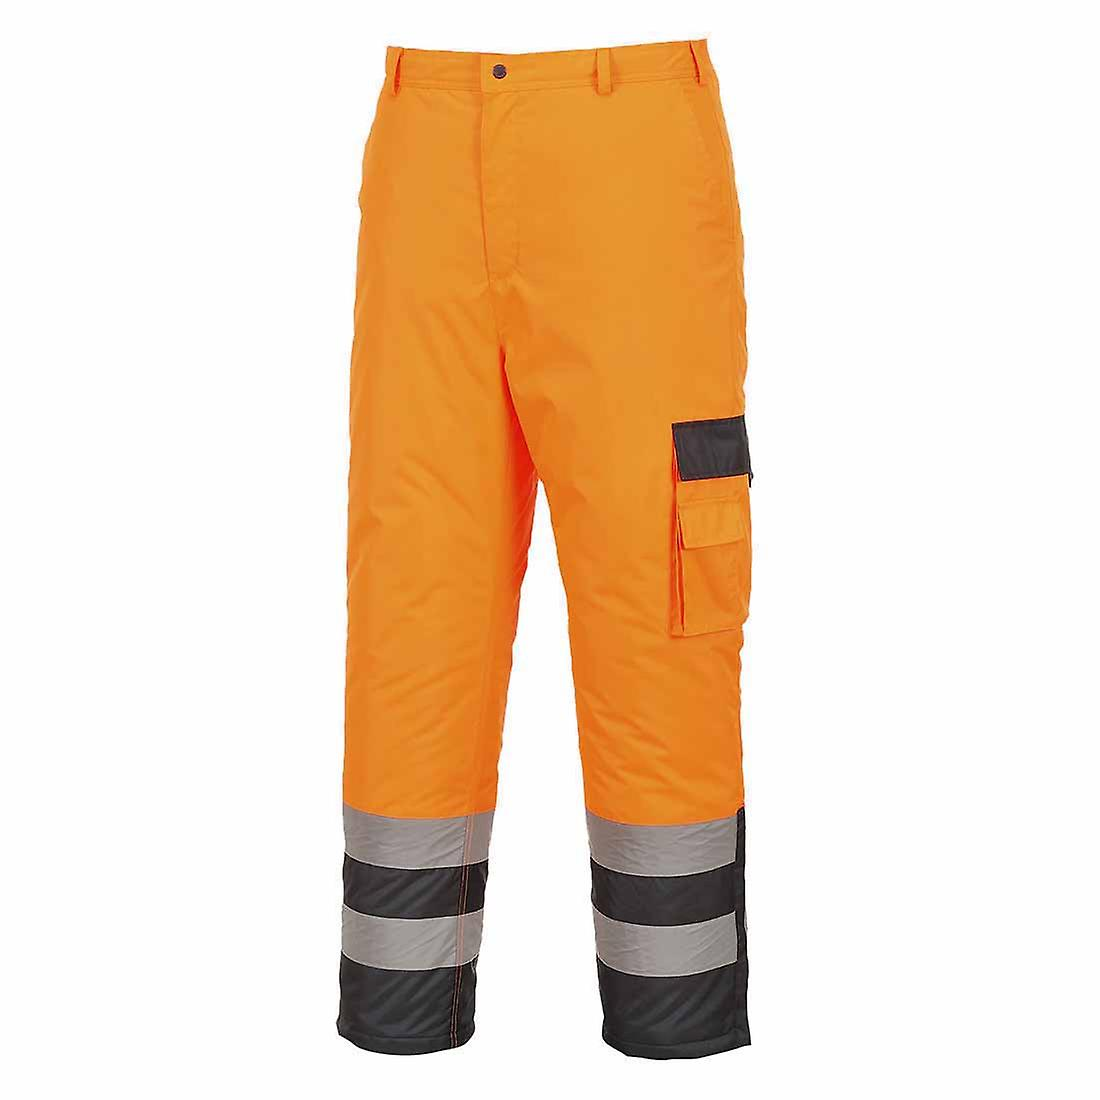 SUw - Hi-Vis Outdoor Workwear Contrast All Weather Trousers - Lined